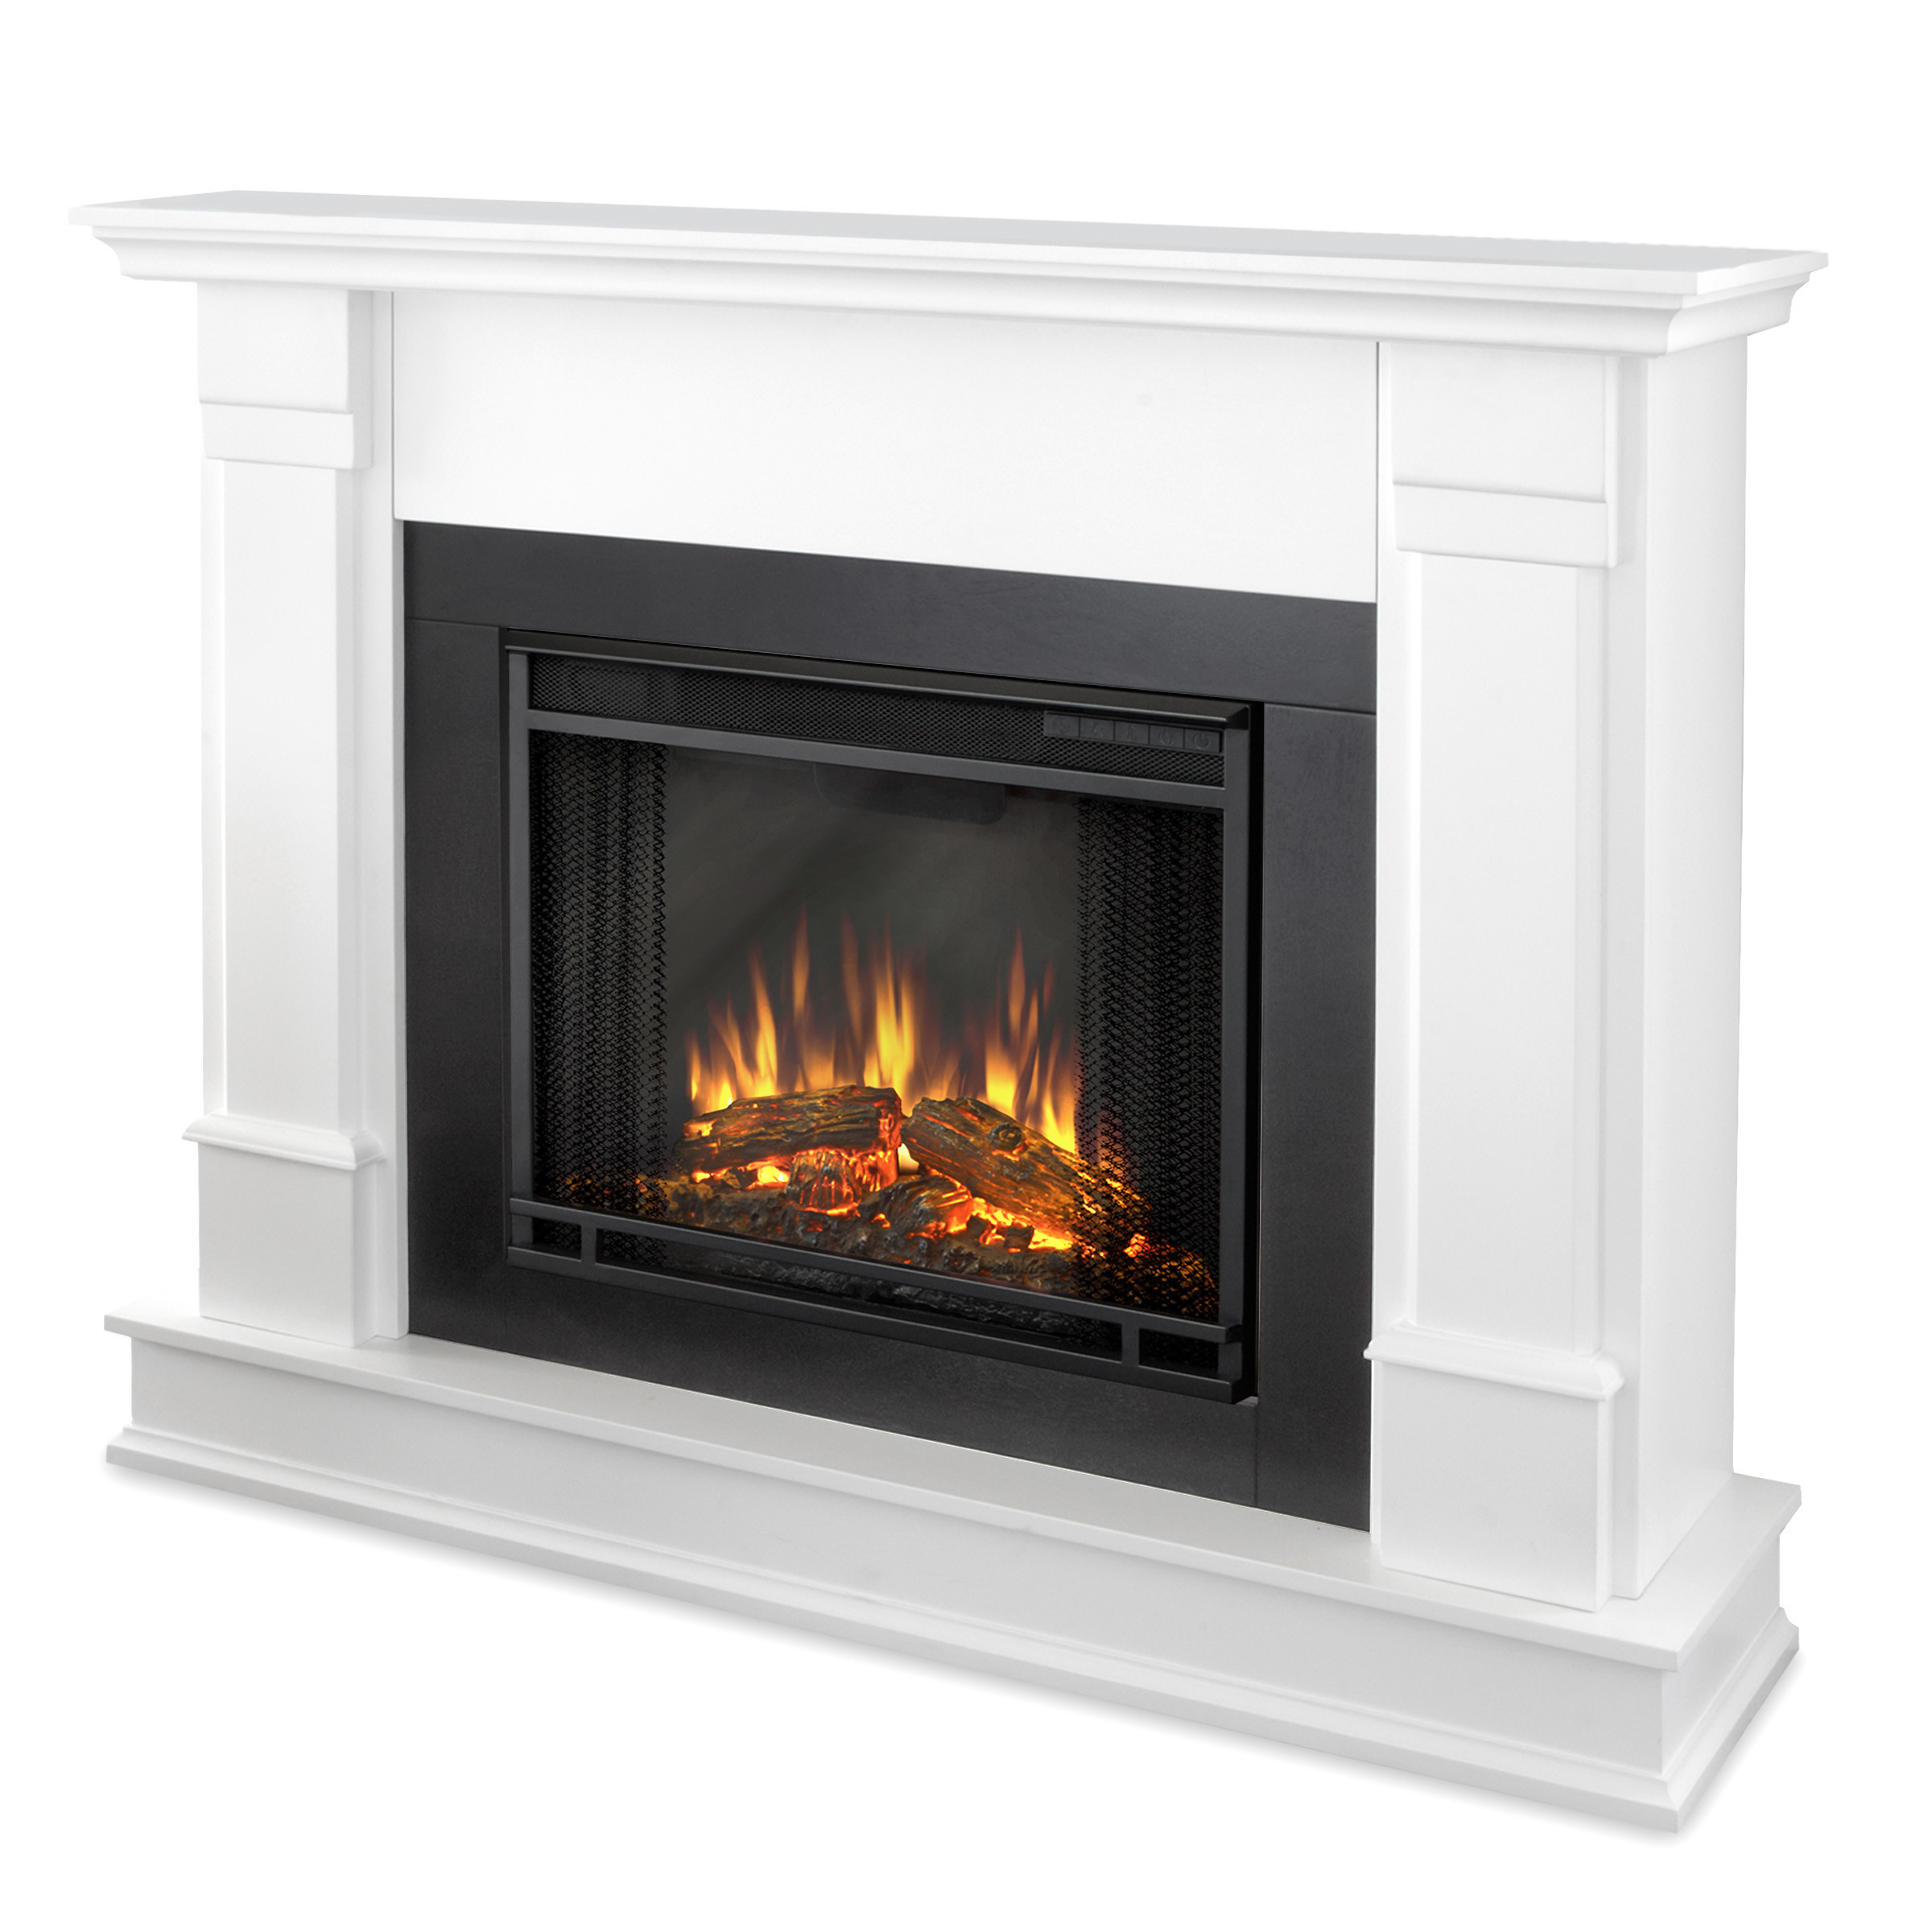 Best ideas about Real Flame Electric Fireplace . Save or Pin Real Flame Silverton Electric Fireplace & Reviews Now.